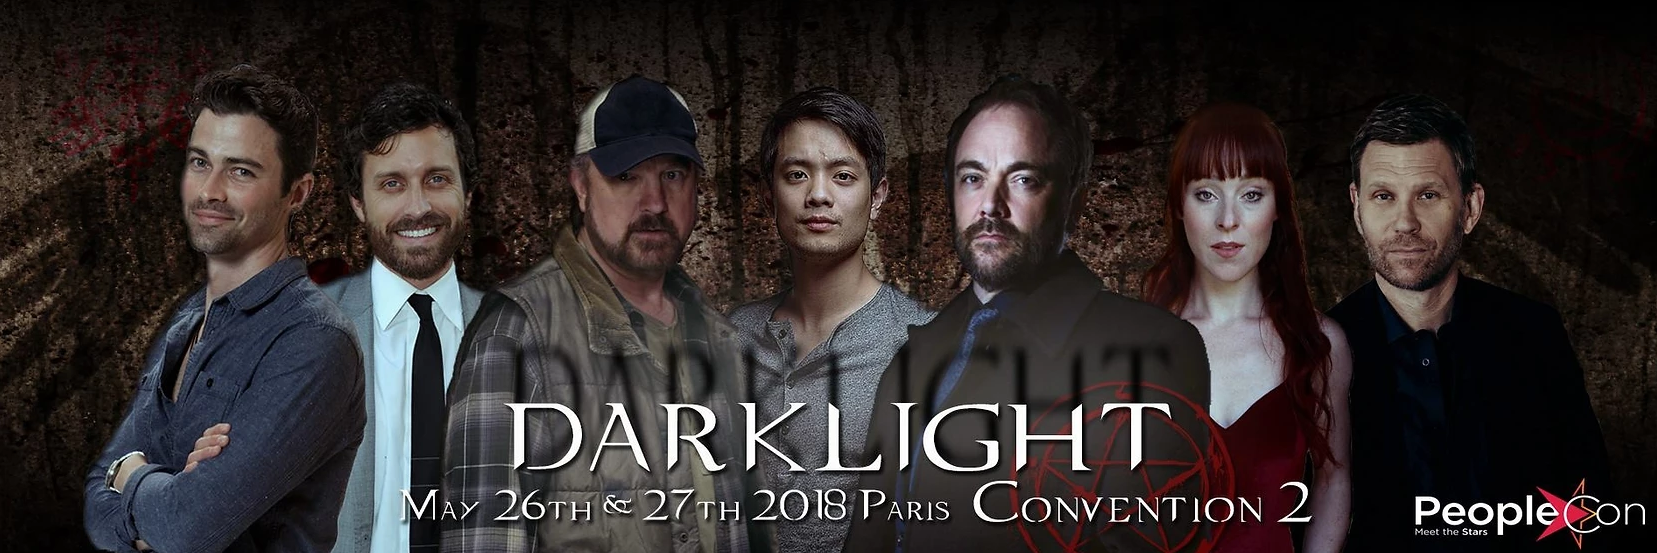 DarkLight Con 2